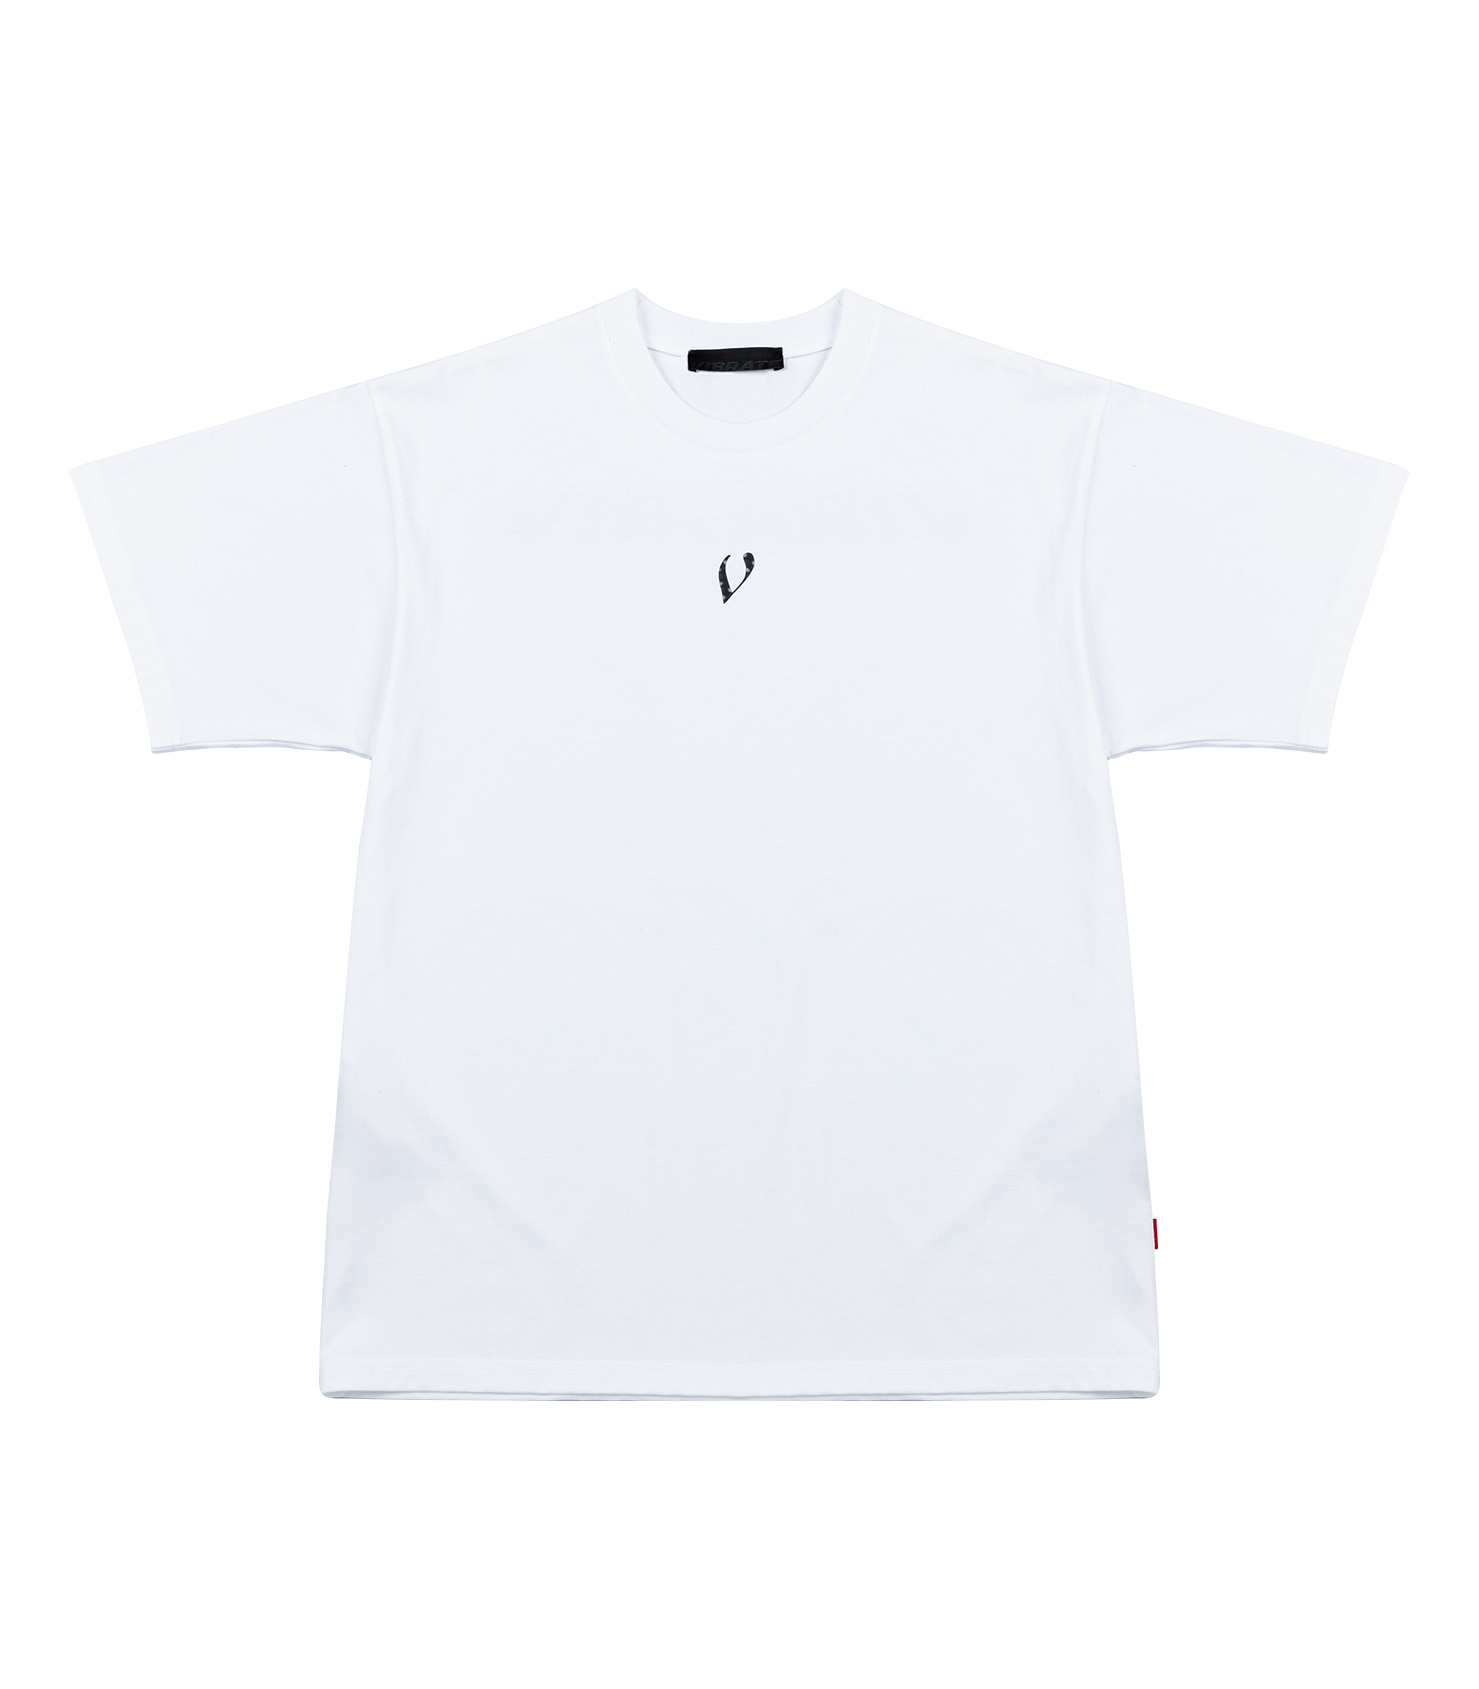 V FLASH M003 T-SHIRT (WHITE)